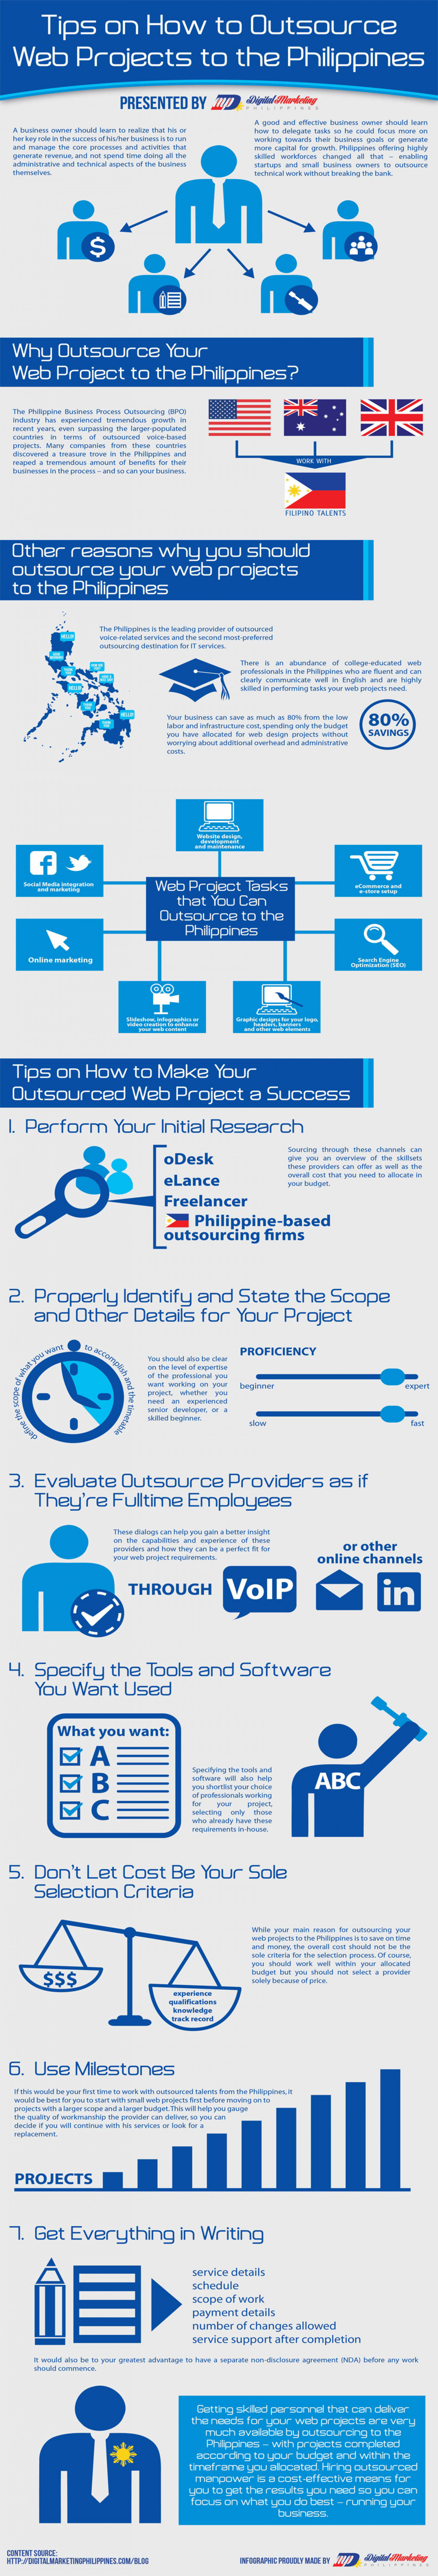 Tips on How to Outsource Web Projects to the Philippines Infographic